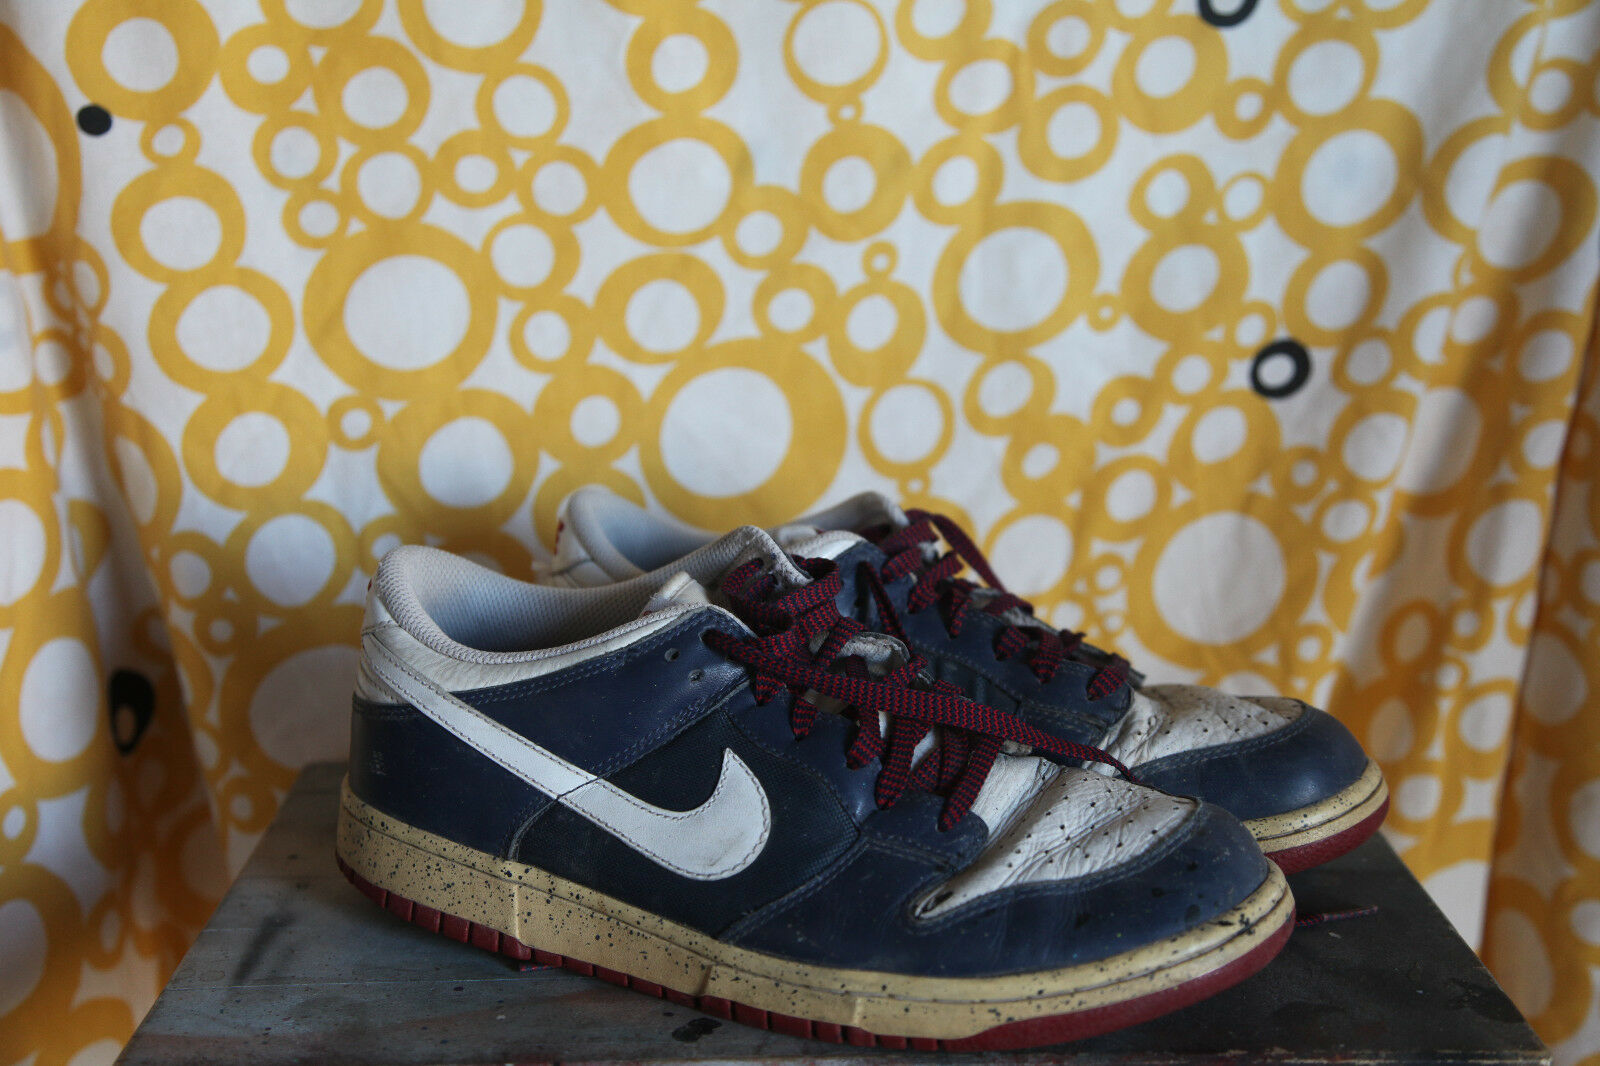 Nike Dunk US Low Navy Blue/White Sz US Dunk 9,5 Special Edition 5c7233